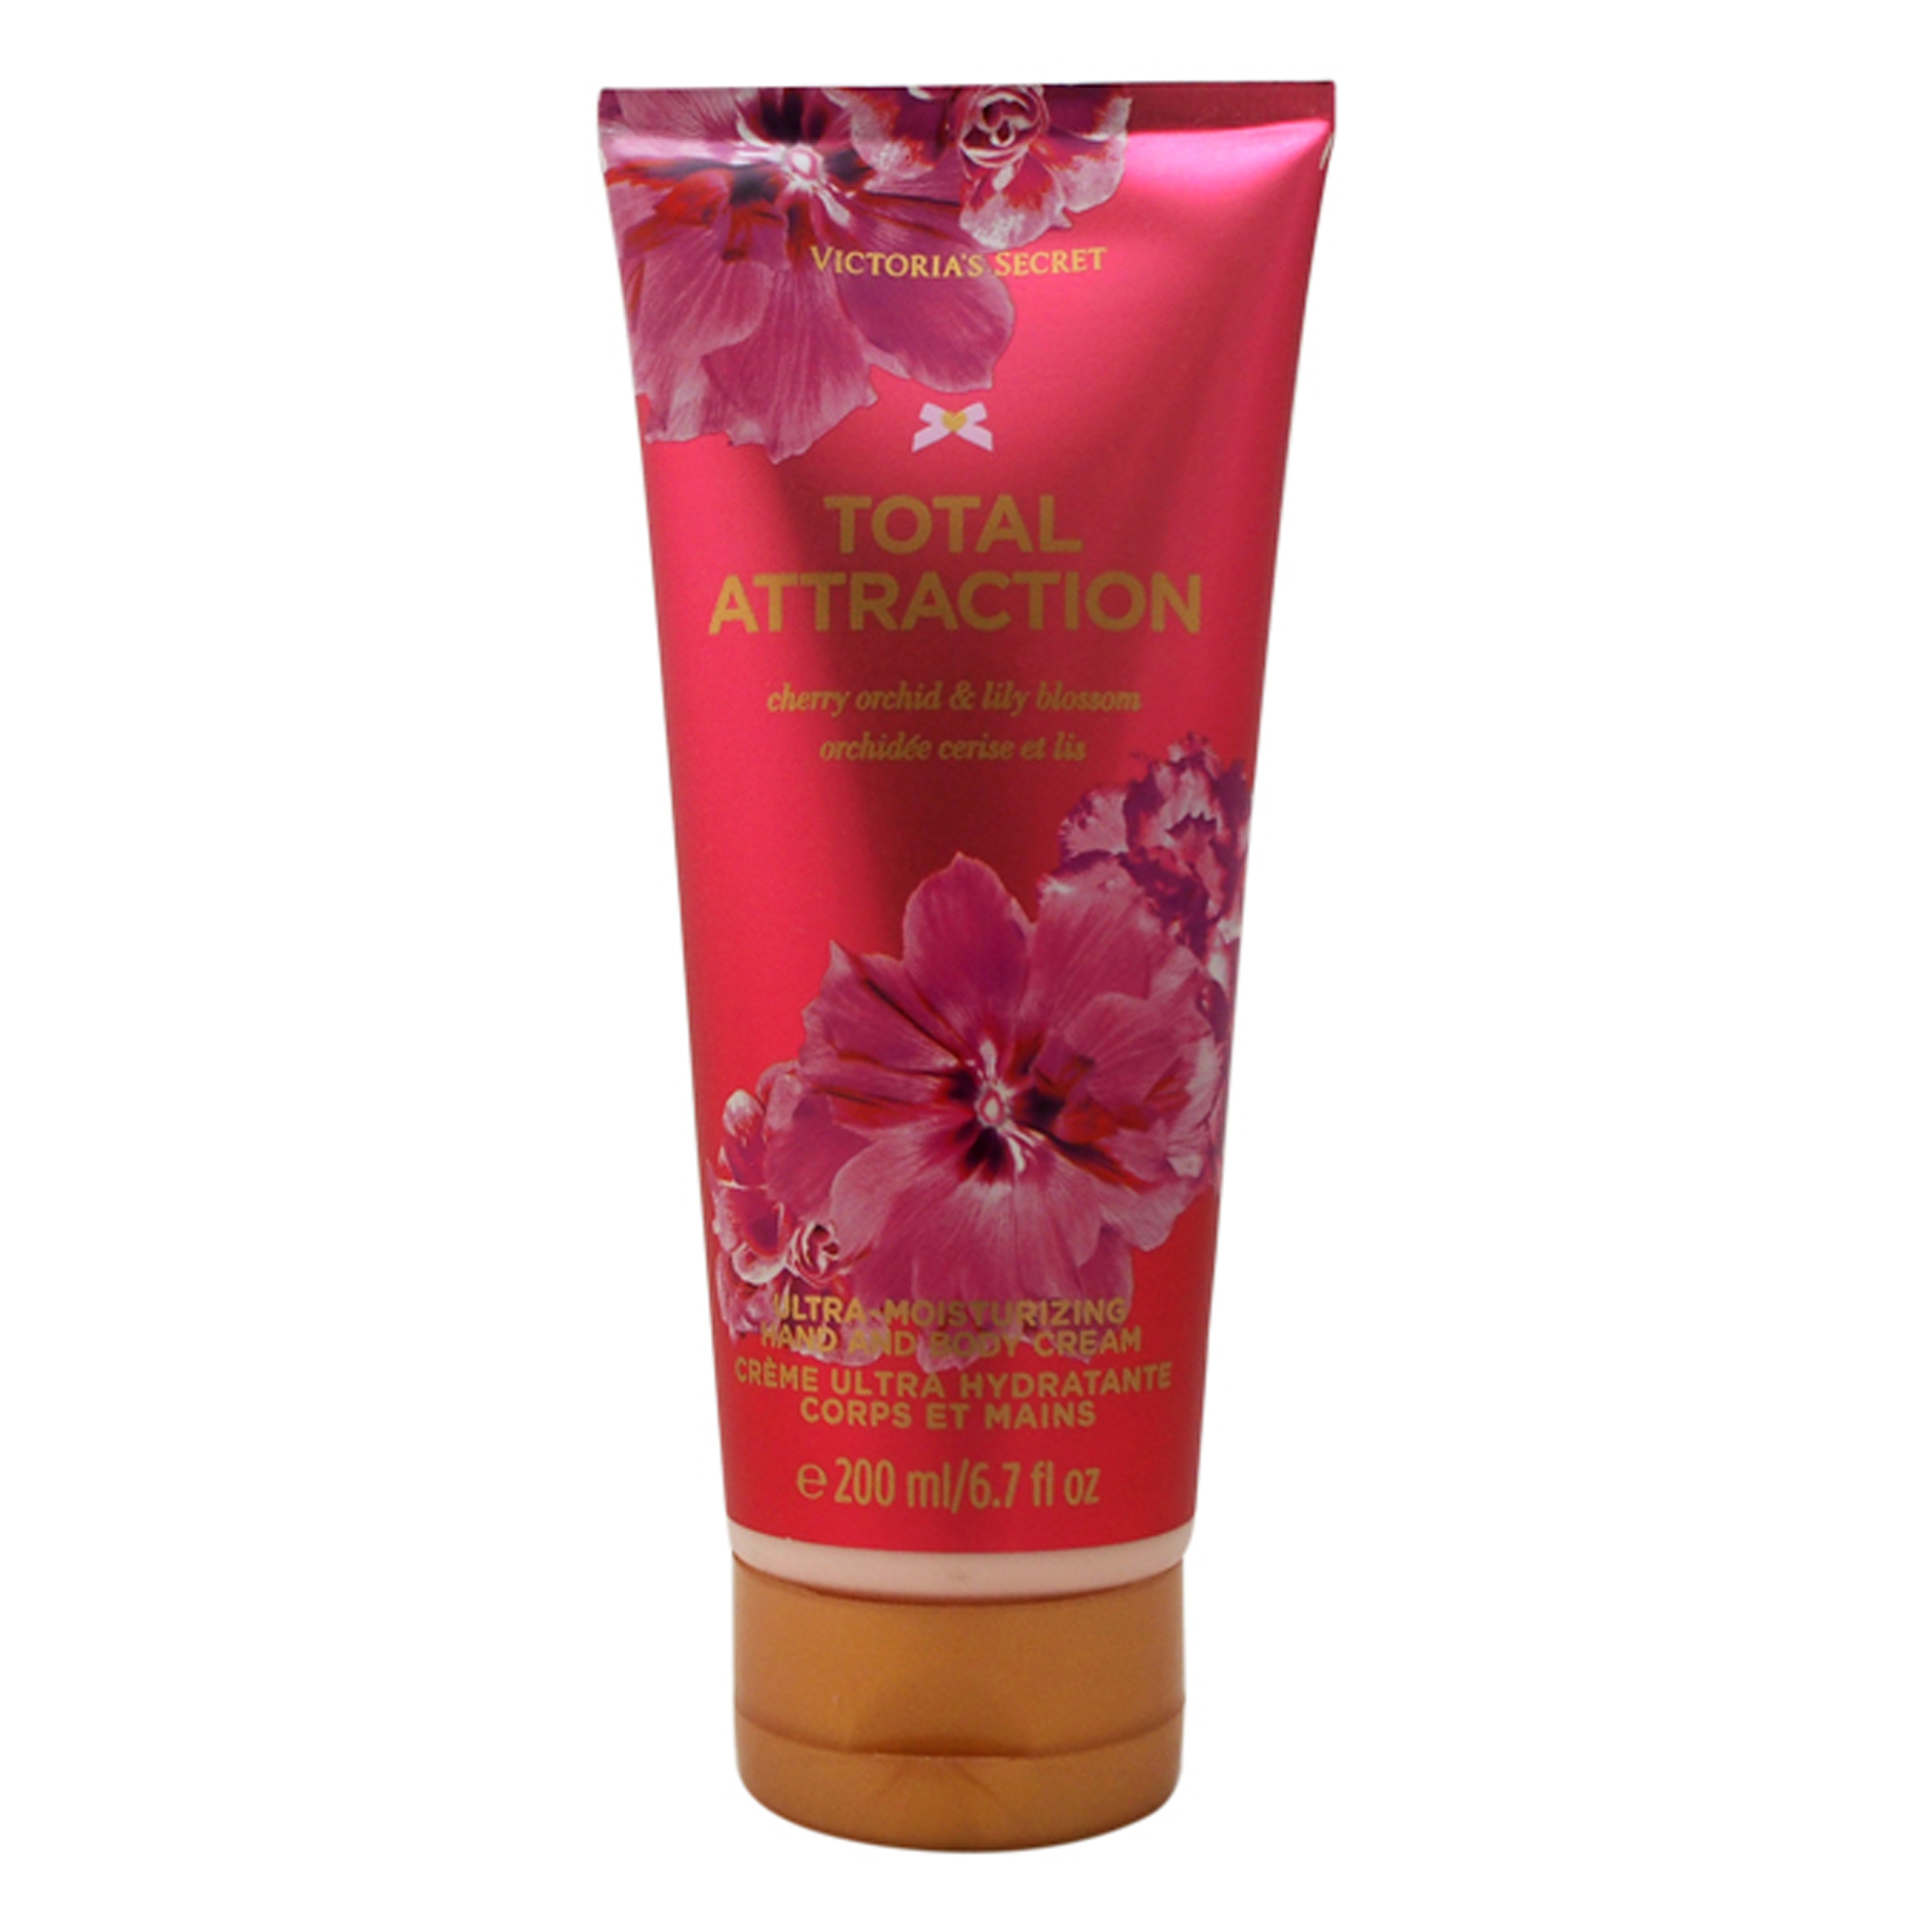 Total Attraction by Victorias Secret for Women - 6.7 oz Hand & Body Cream